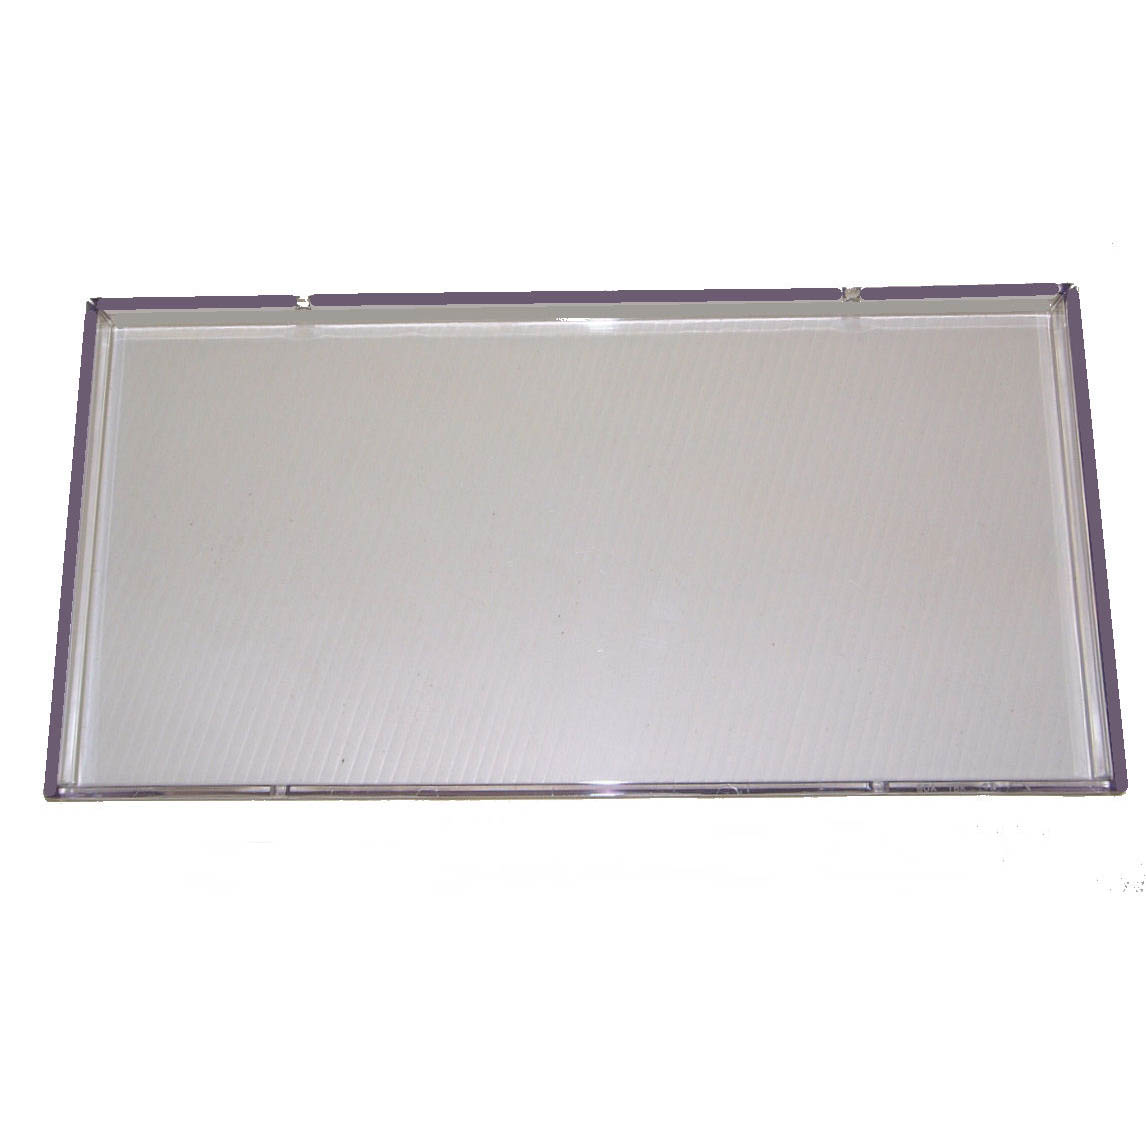 K6 LARGE POLY WINDOW